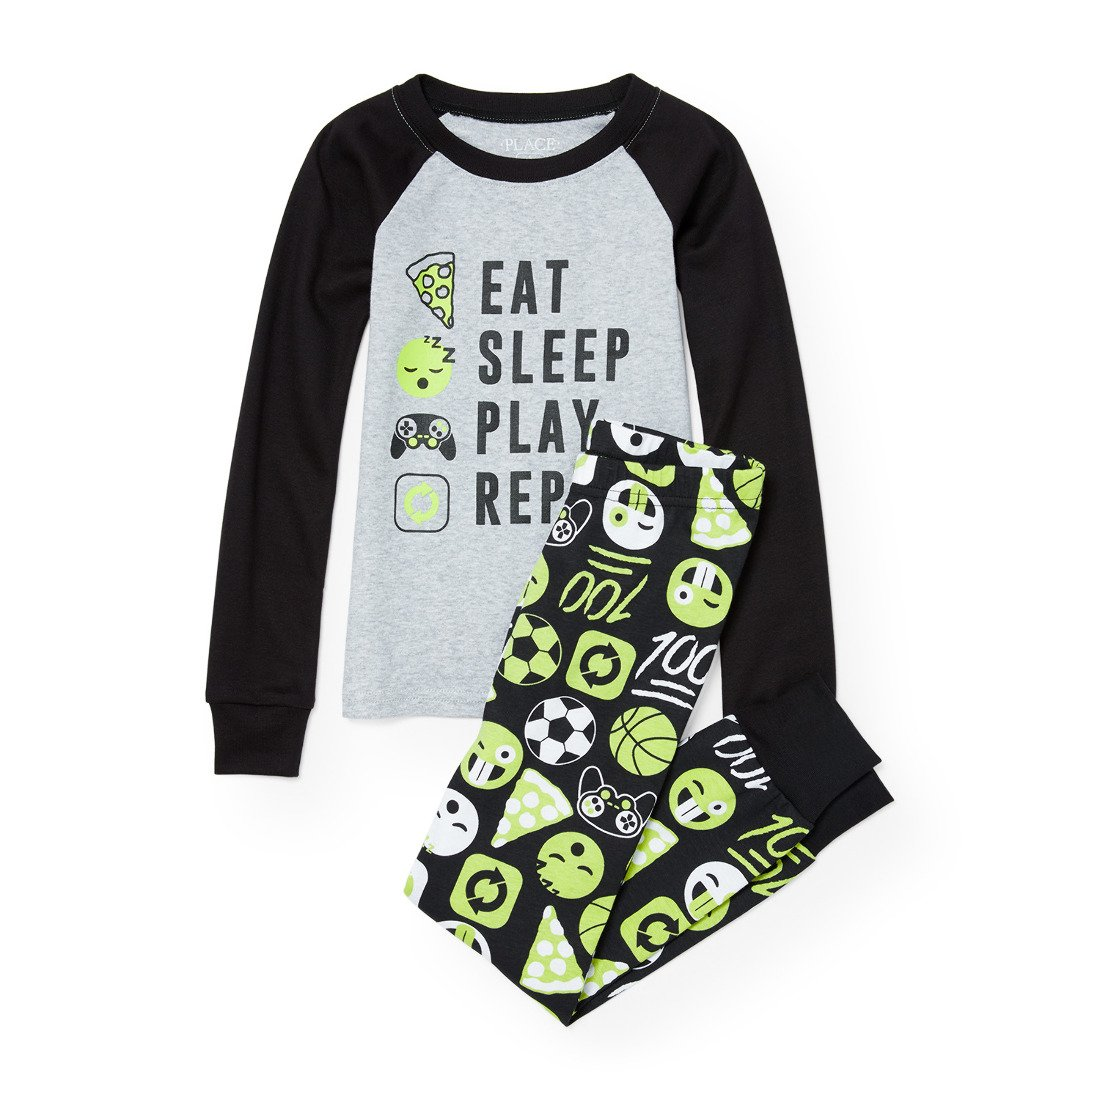 The Children's Place Boys' Big Eat and Sleep List Themed Cotton Pajamas, H/T Mist 90465, 6